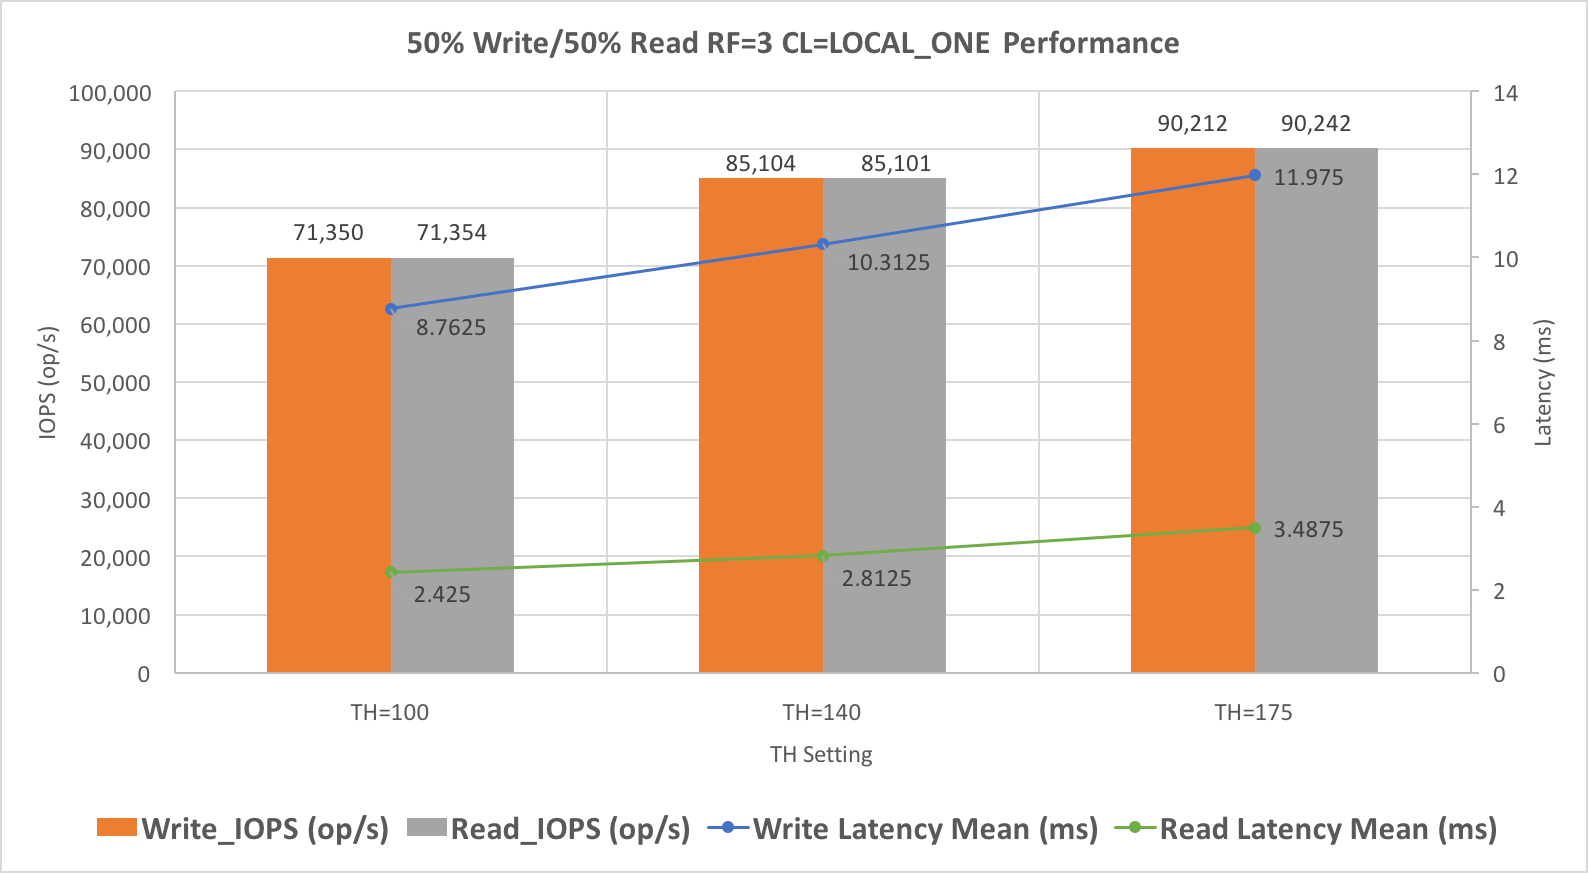 50% Write and 50% Read Performance Testing Results